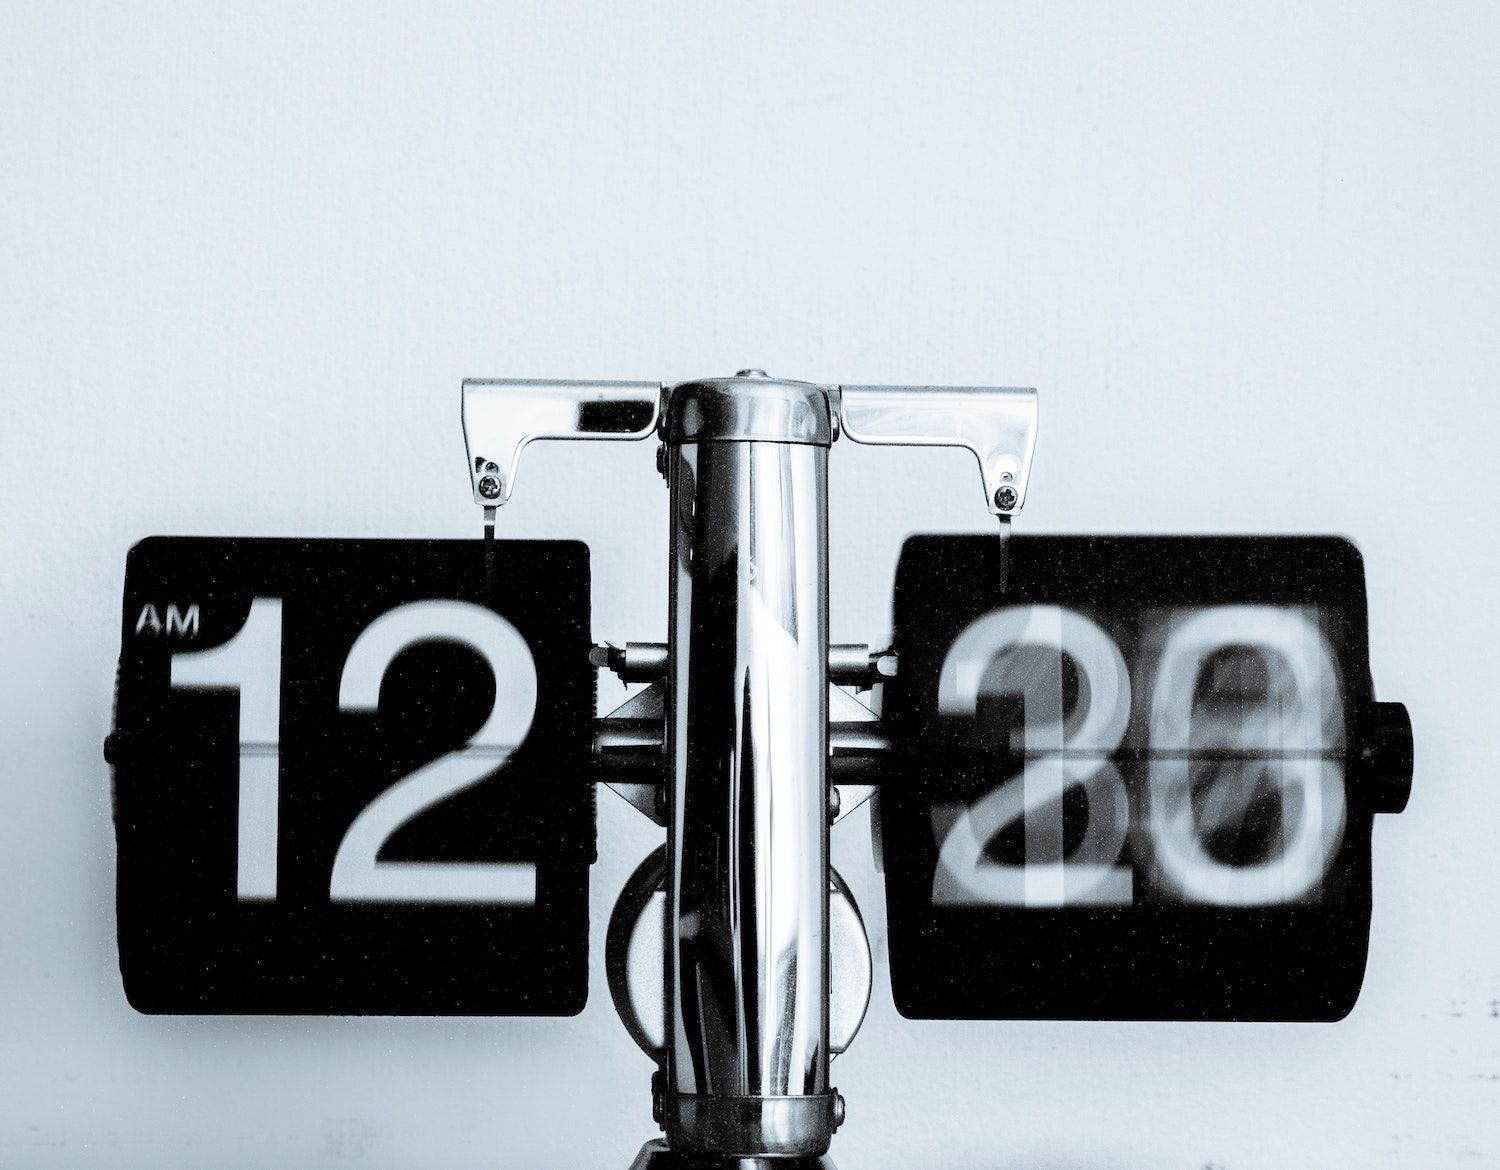 Clock ticking to show the importance of time management